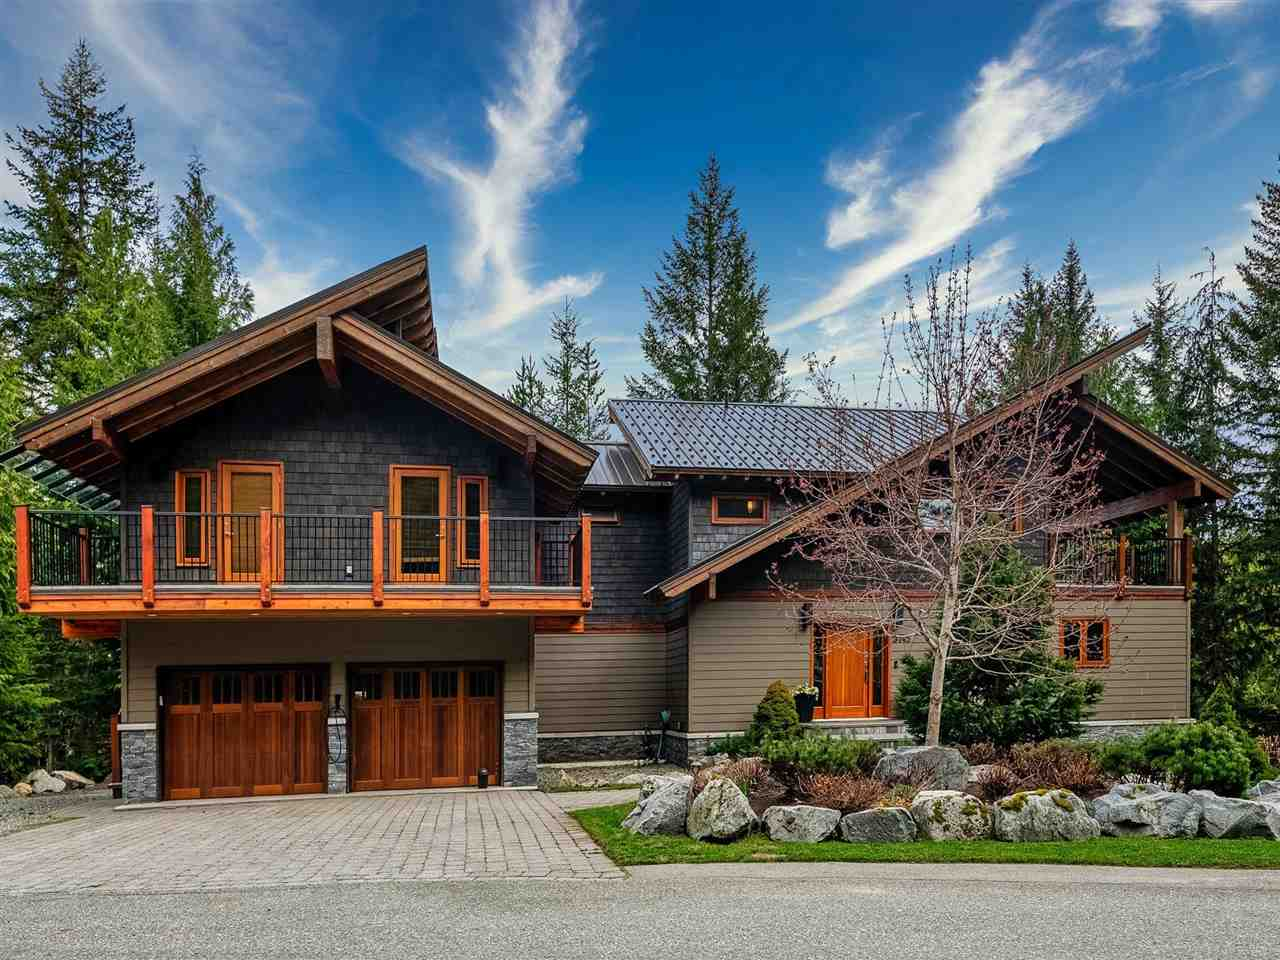 8745 IDYLWOOD PLACE - Alpine Meadows House/Single Family for sale, 7 Bedrooms (R2578936) - #1